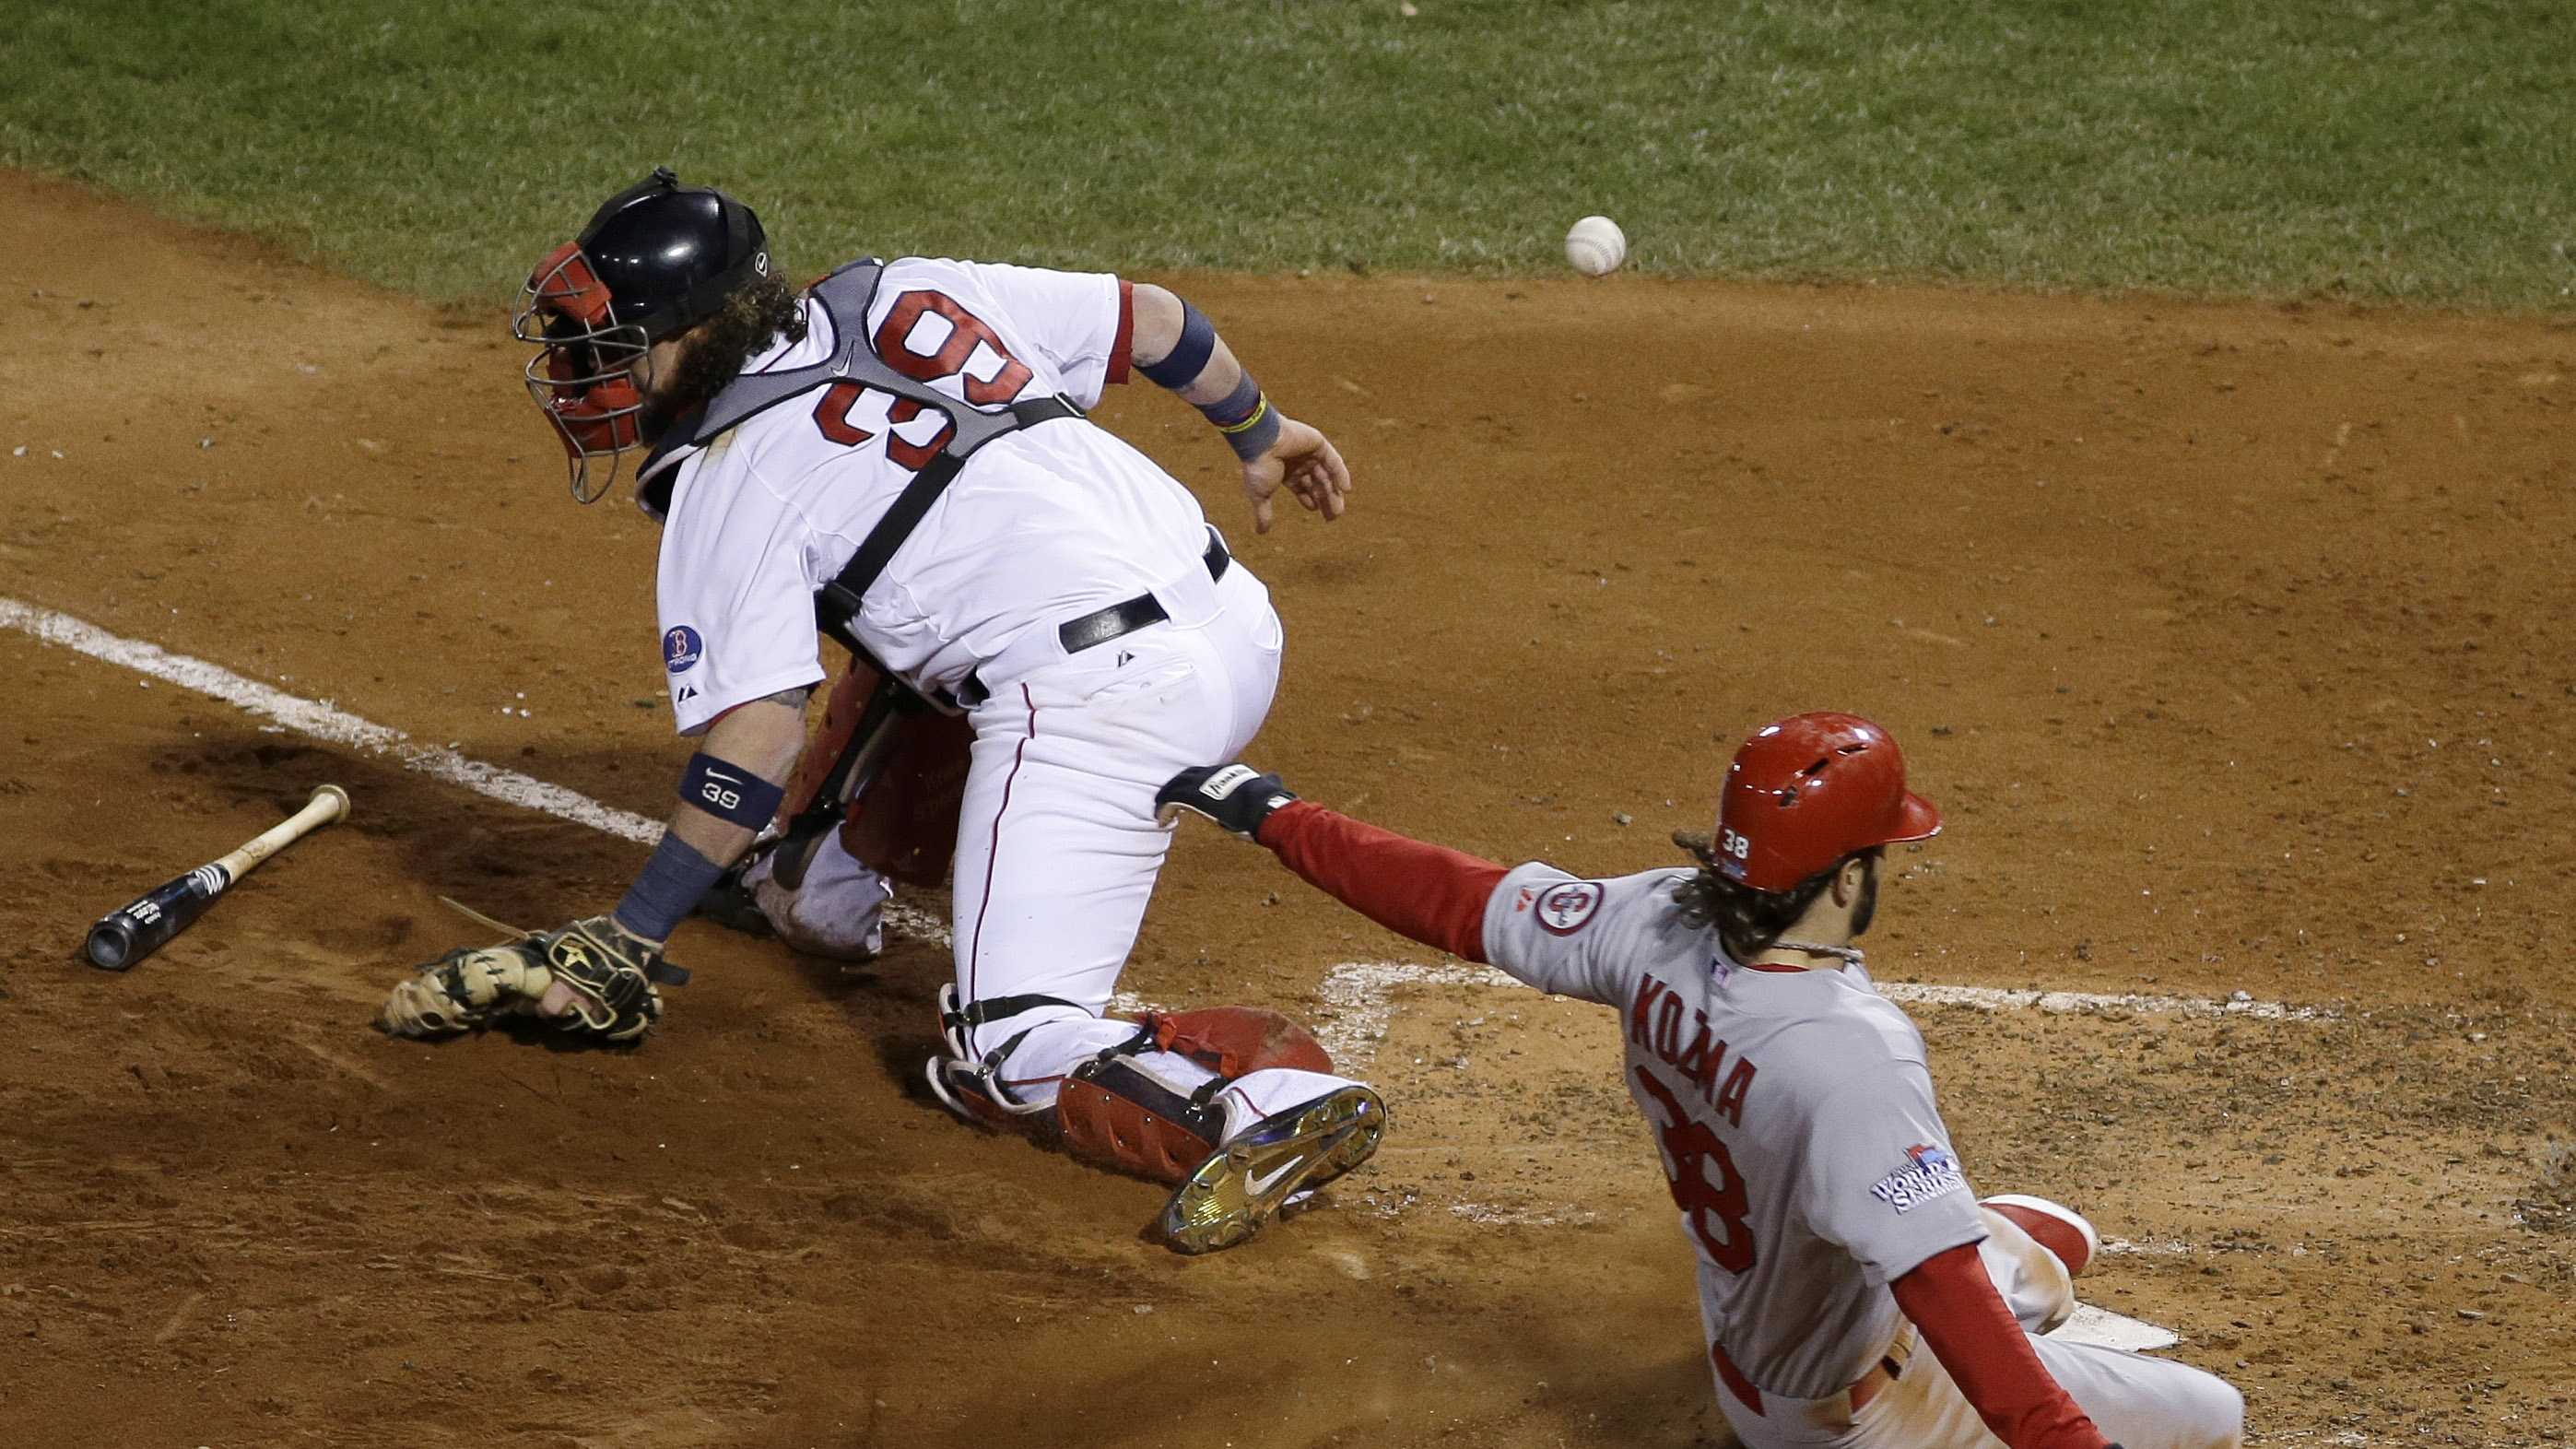 St. Louis Cardinals' Pete Kozma scores on a sacrifice fly as Boston Red Sox catcher Jarrod Saltalamacchia can't handle the throw during the seventh inning of Game 2 of baseball's World Series Thursday, Oct. 24, 2013, in Boston.